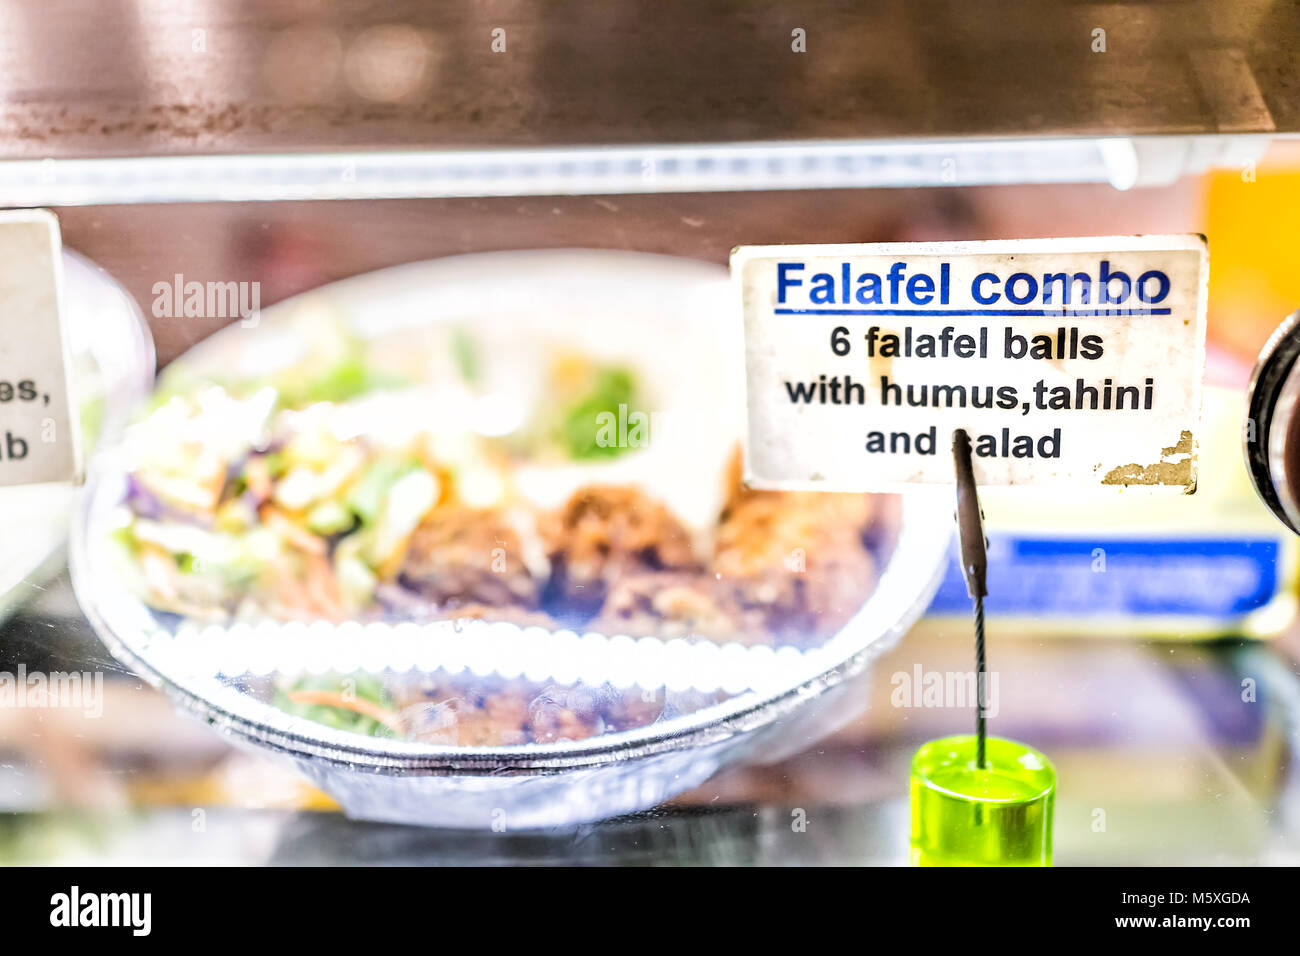 Packaged falafel balls middle eastern take away fast food bowl, hummus, tahini, salad on display behind glass window - Stock Image